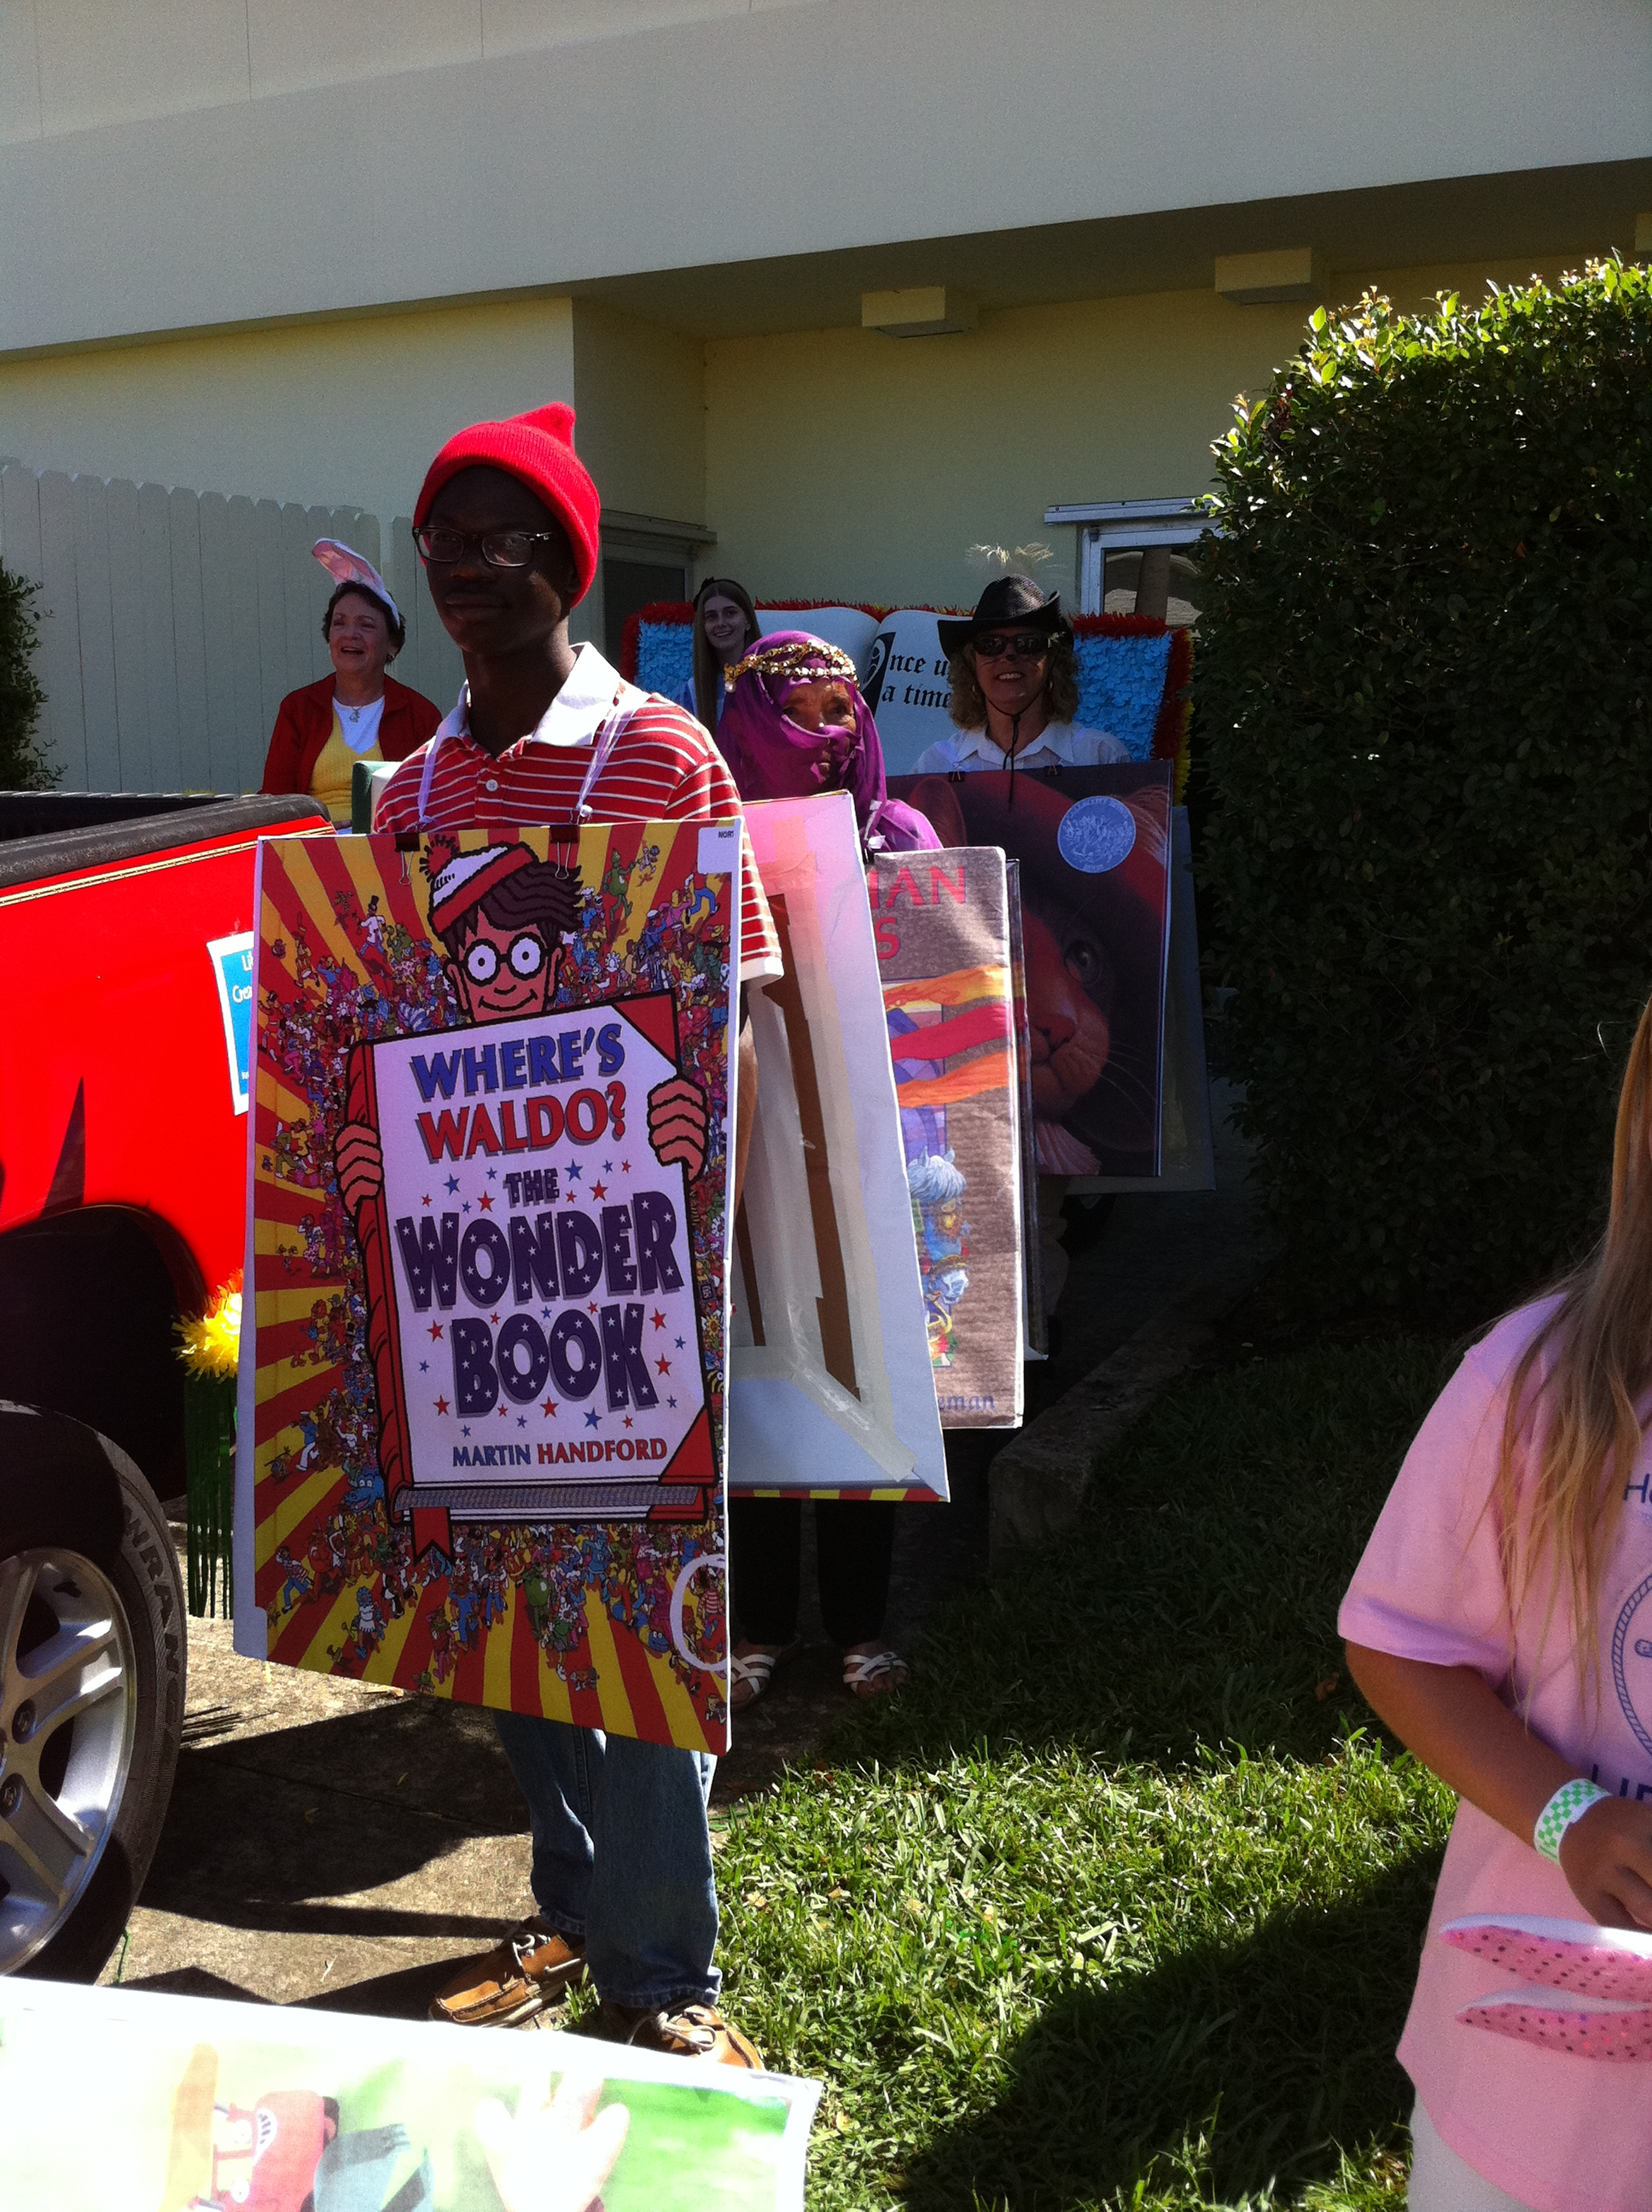 People dressed as books are ready for the parade